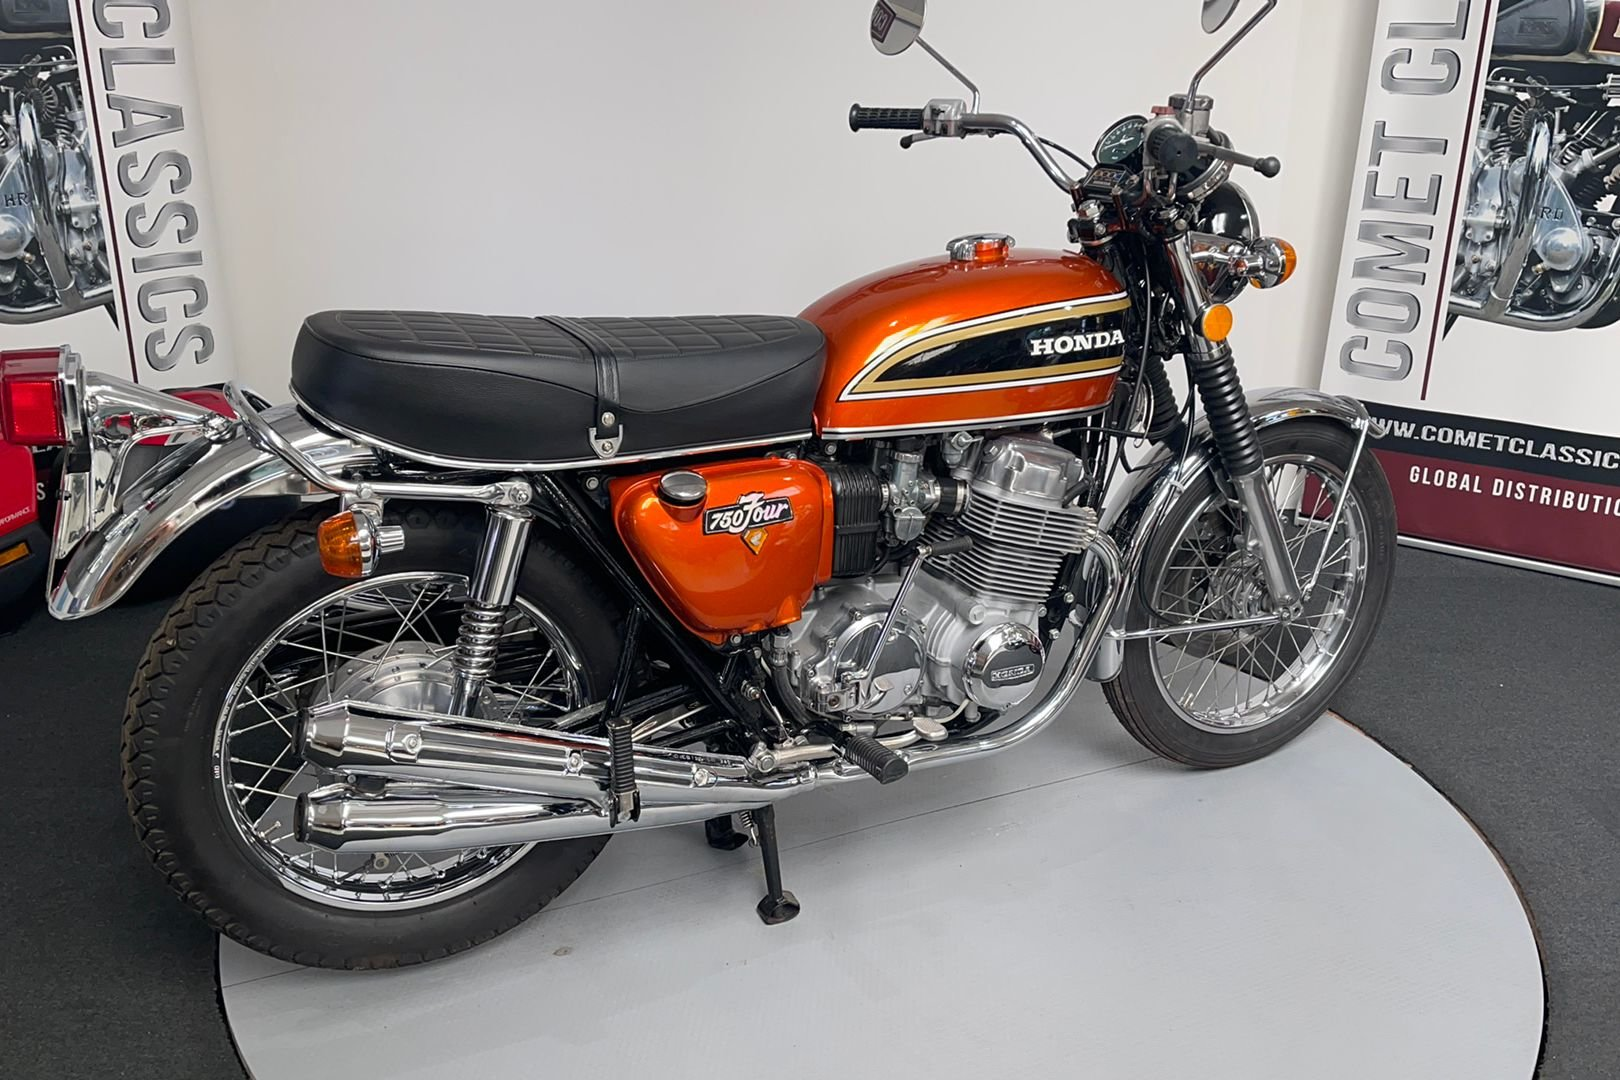 Honda 7504 1973 For Sale (picture 10 of 10)